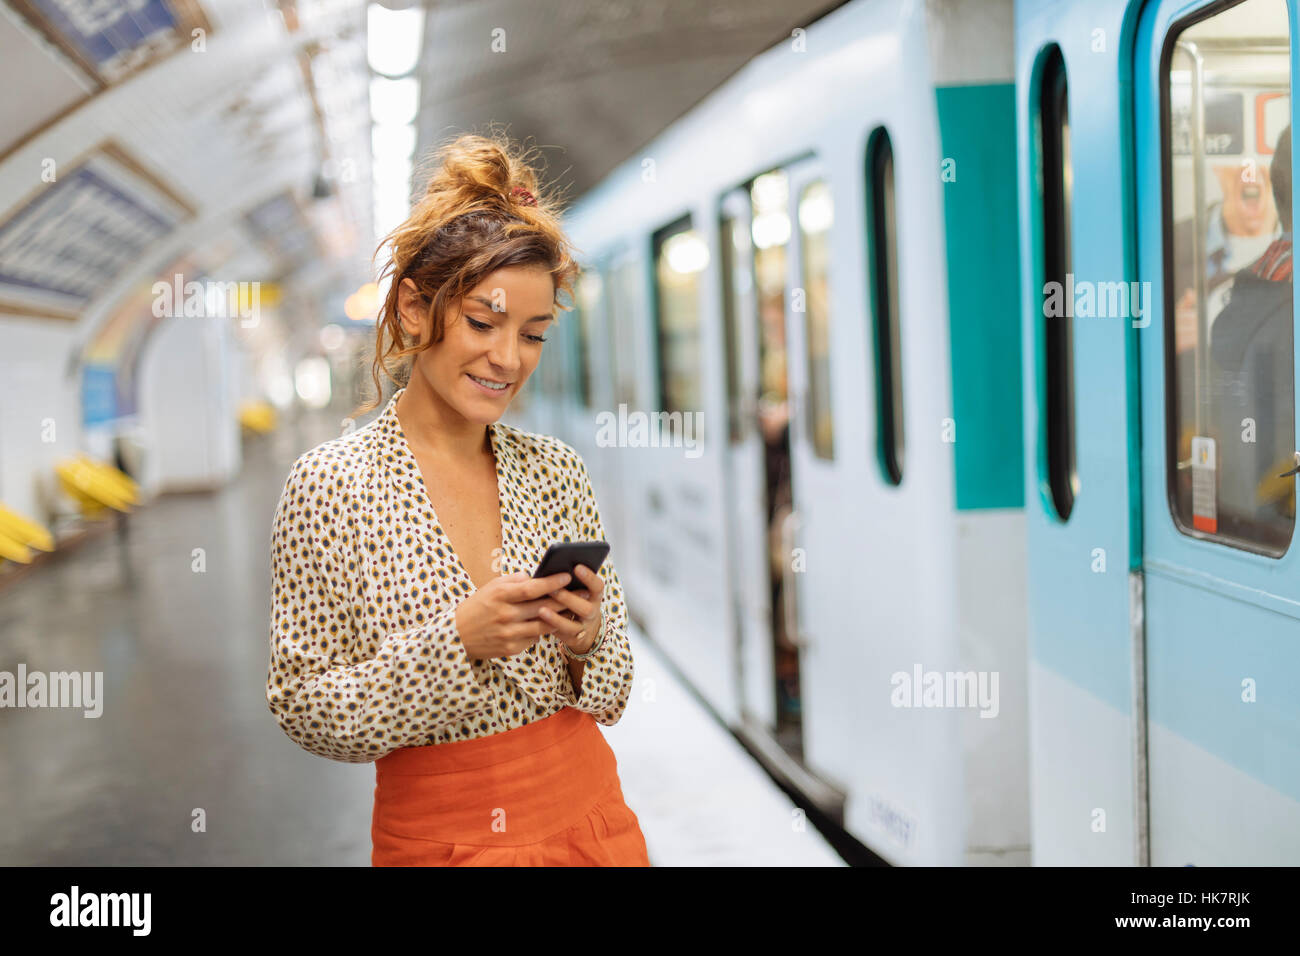 Paris, Parisian woman in a subway station - Stock Image